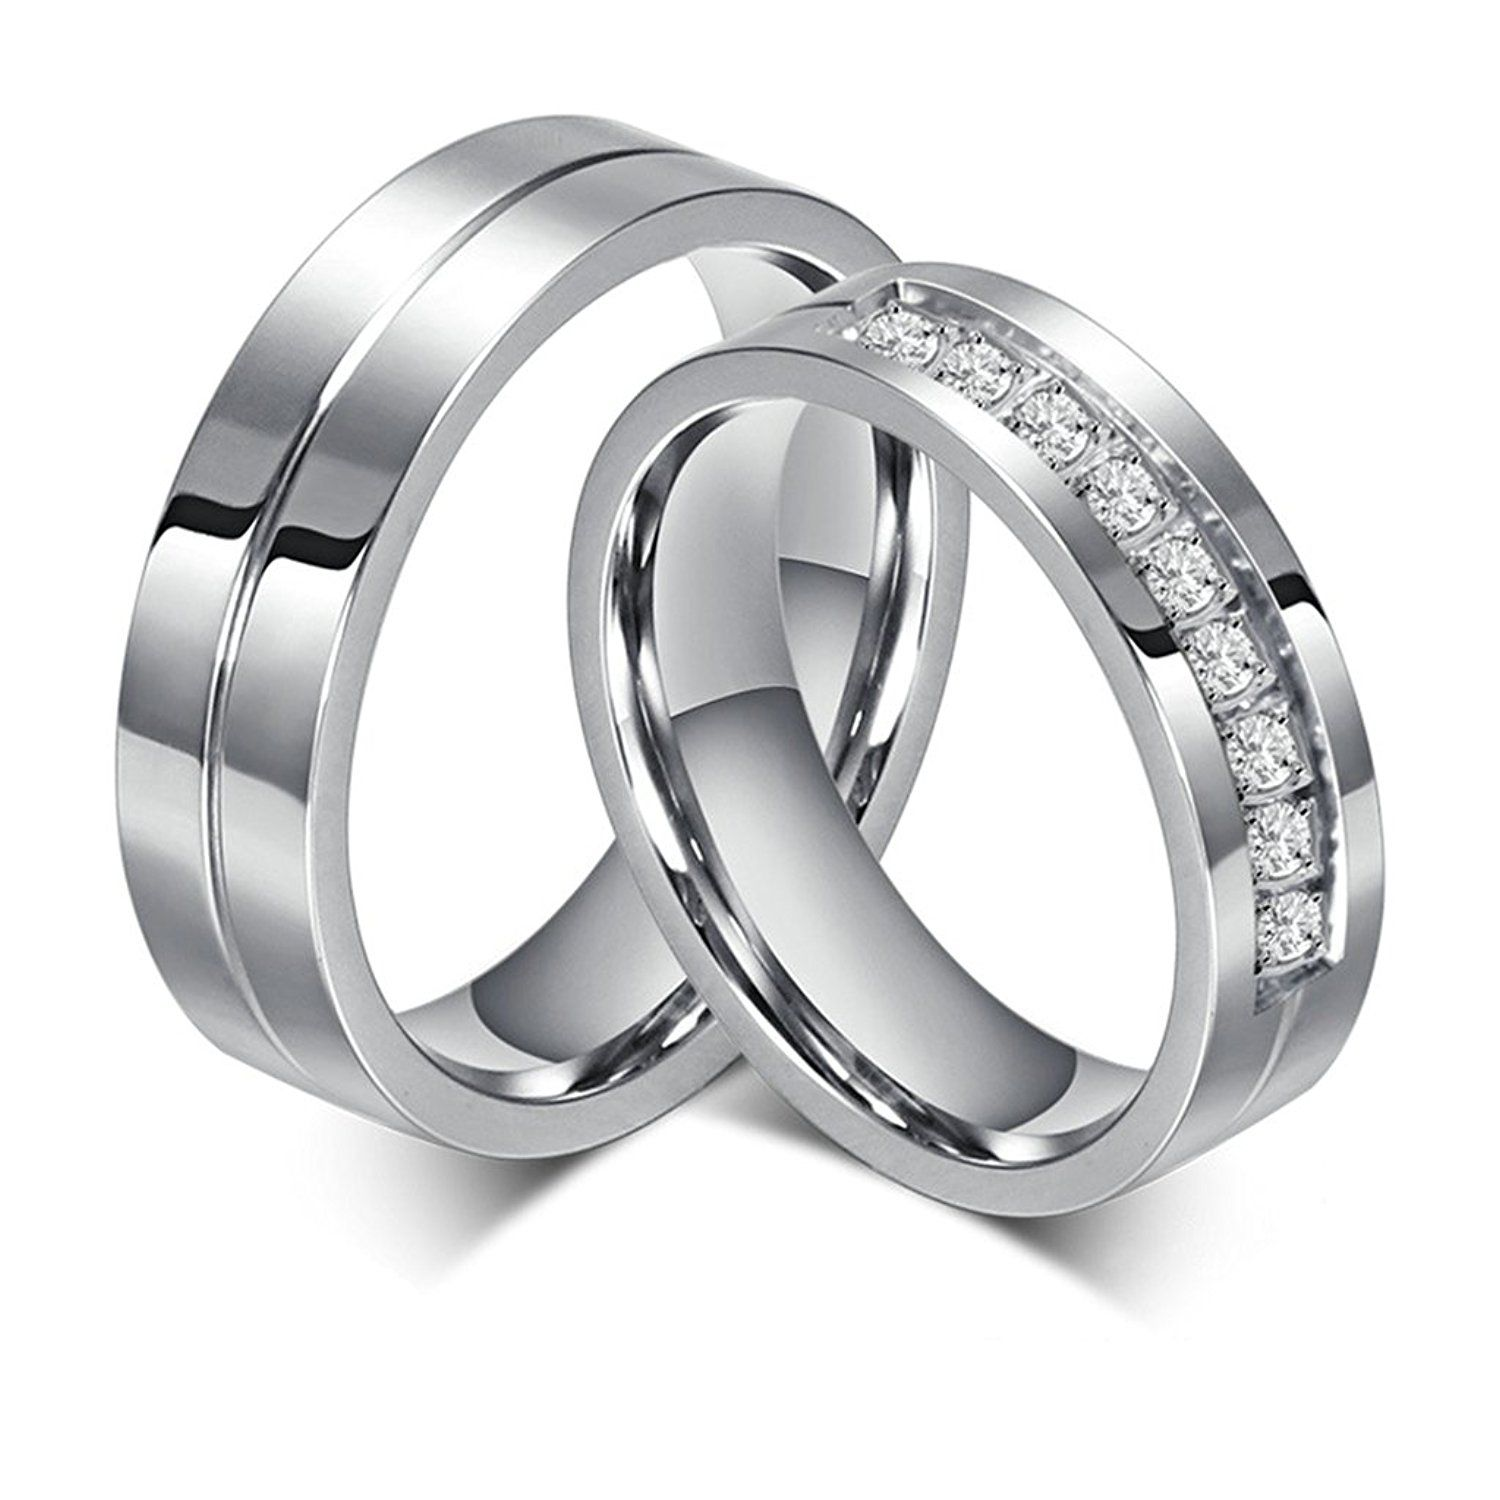 Bishilin Stainless Steel His and Hers Matchiing Set Couple Wedding Rings For Women